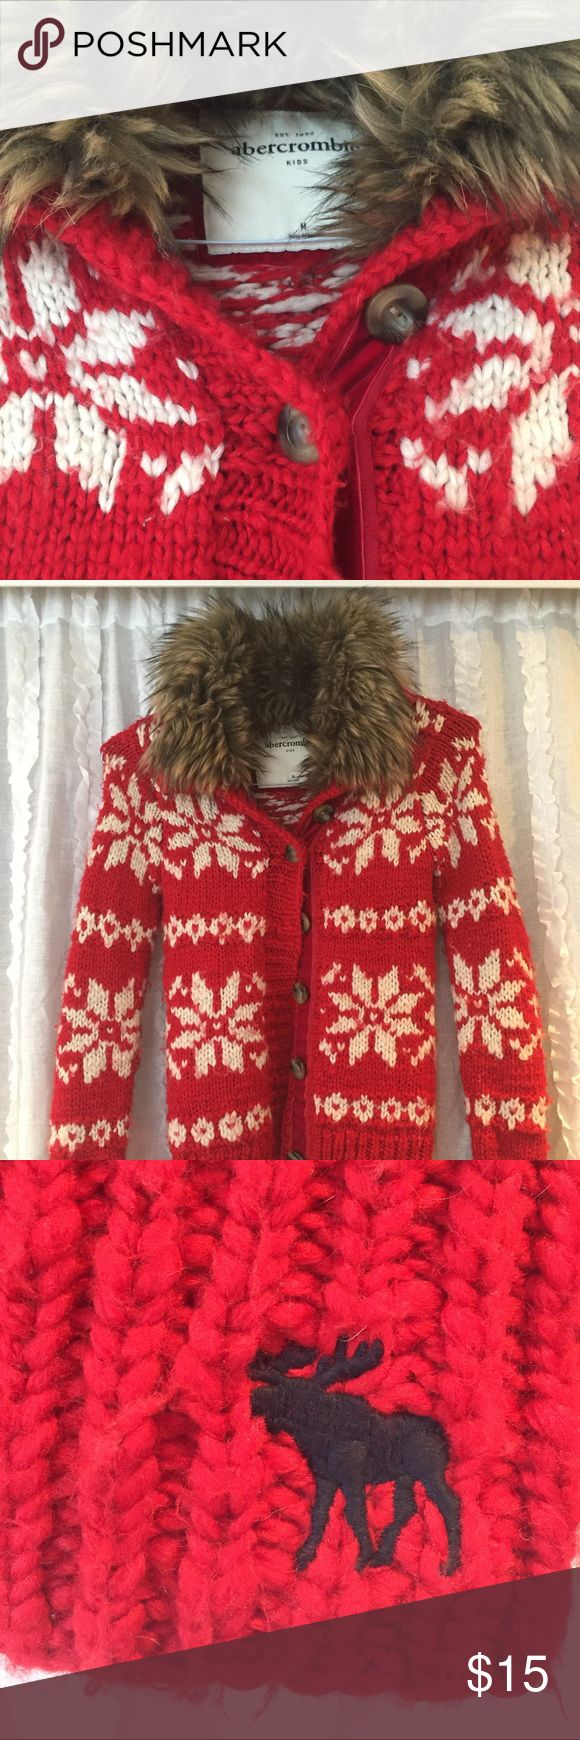 Abercrombie girls large cardigan sweater Abercrombie girls medium cardigan button down sweater. Cute sweater with a fur collar in good condition. abercrombie kids Shirts & Tops Sweaters